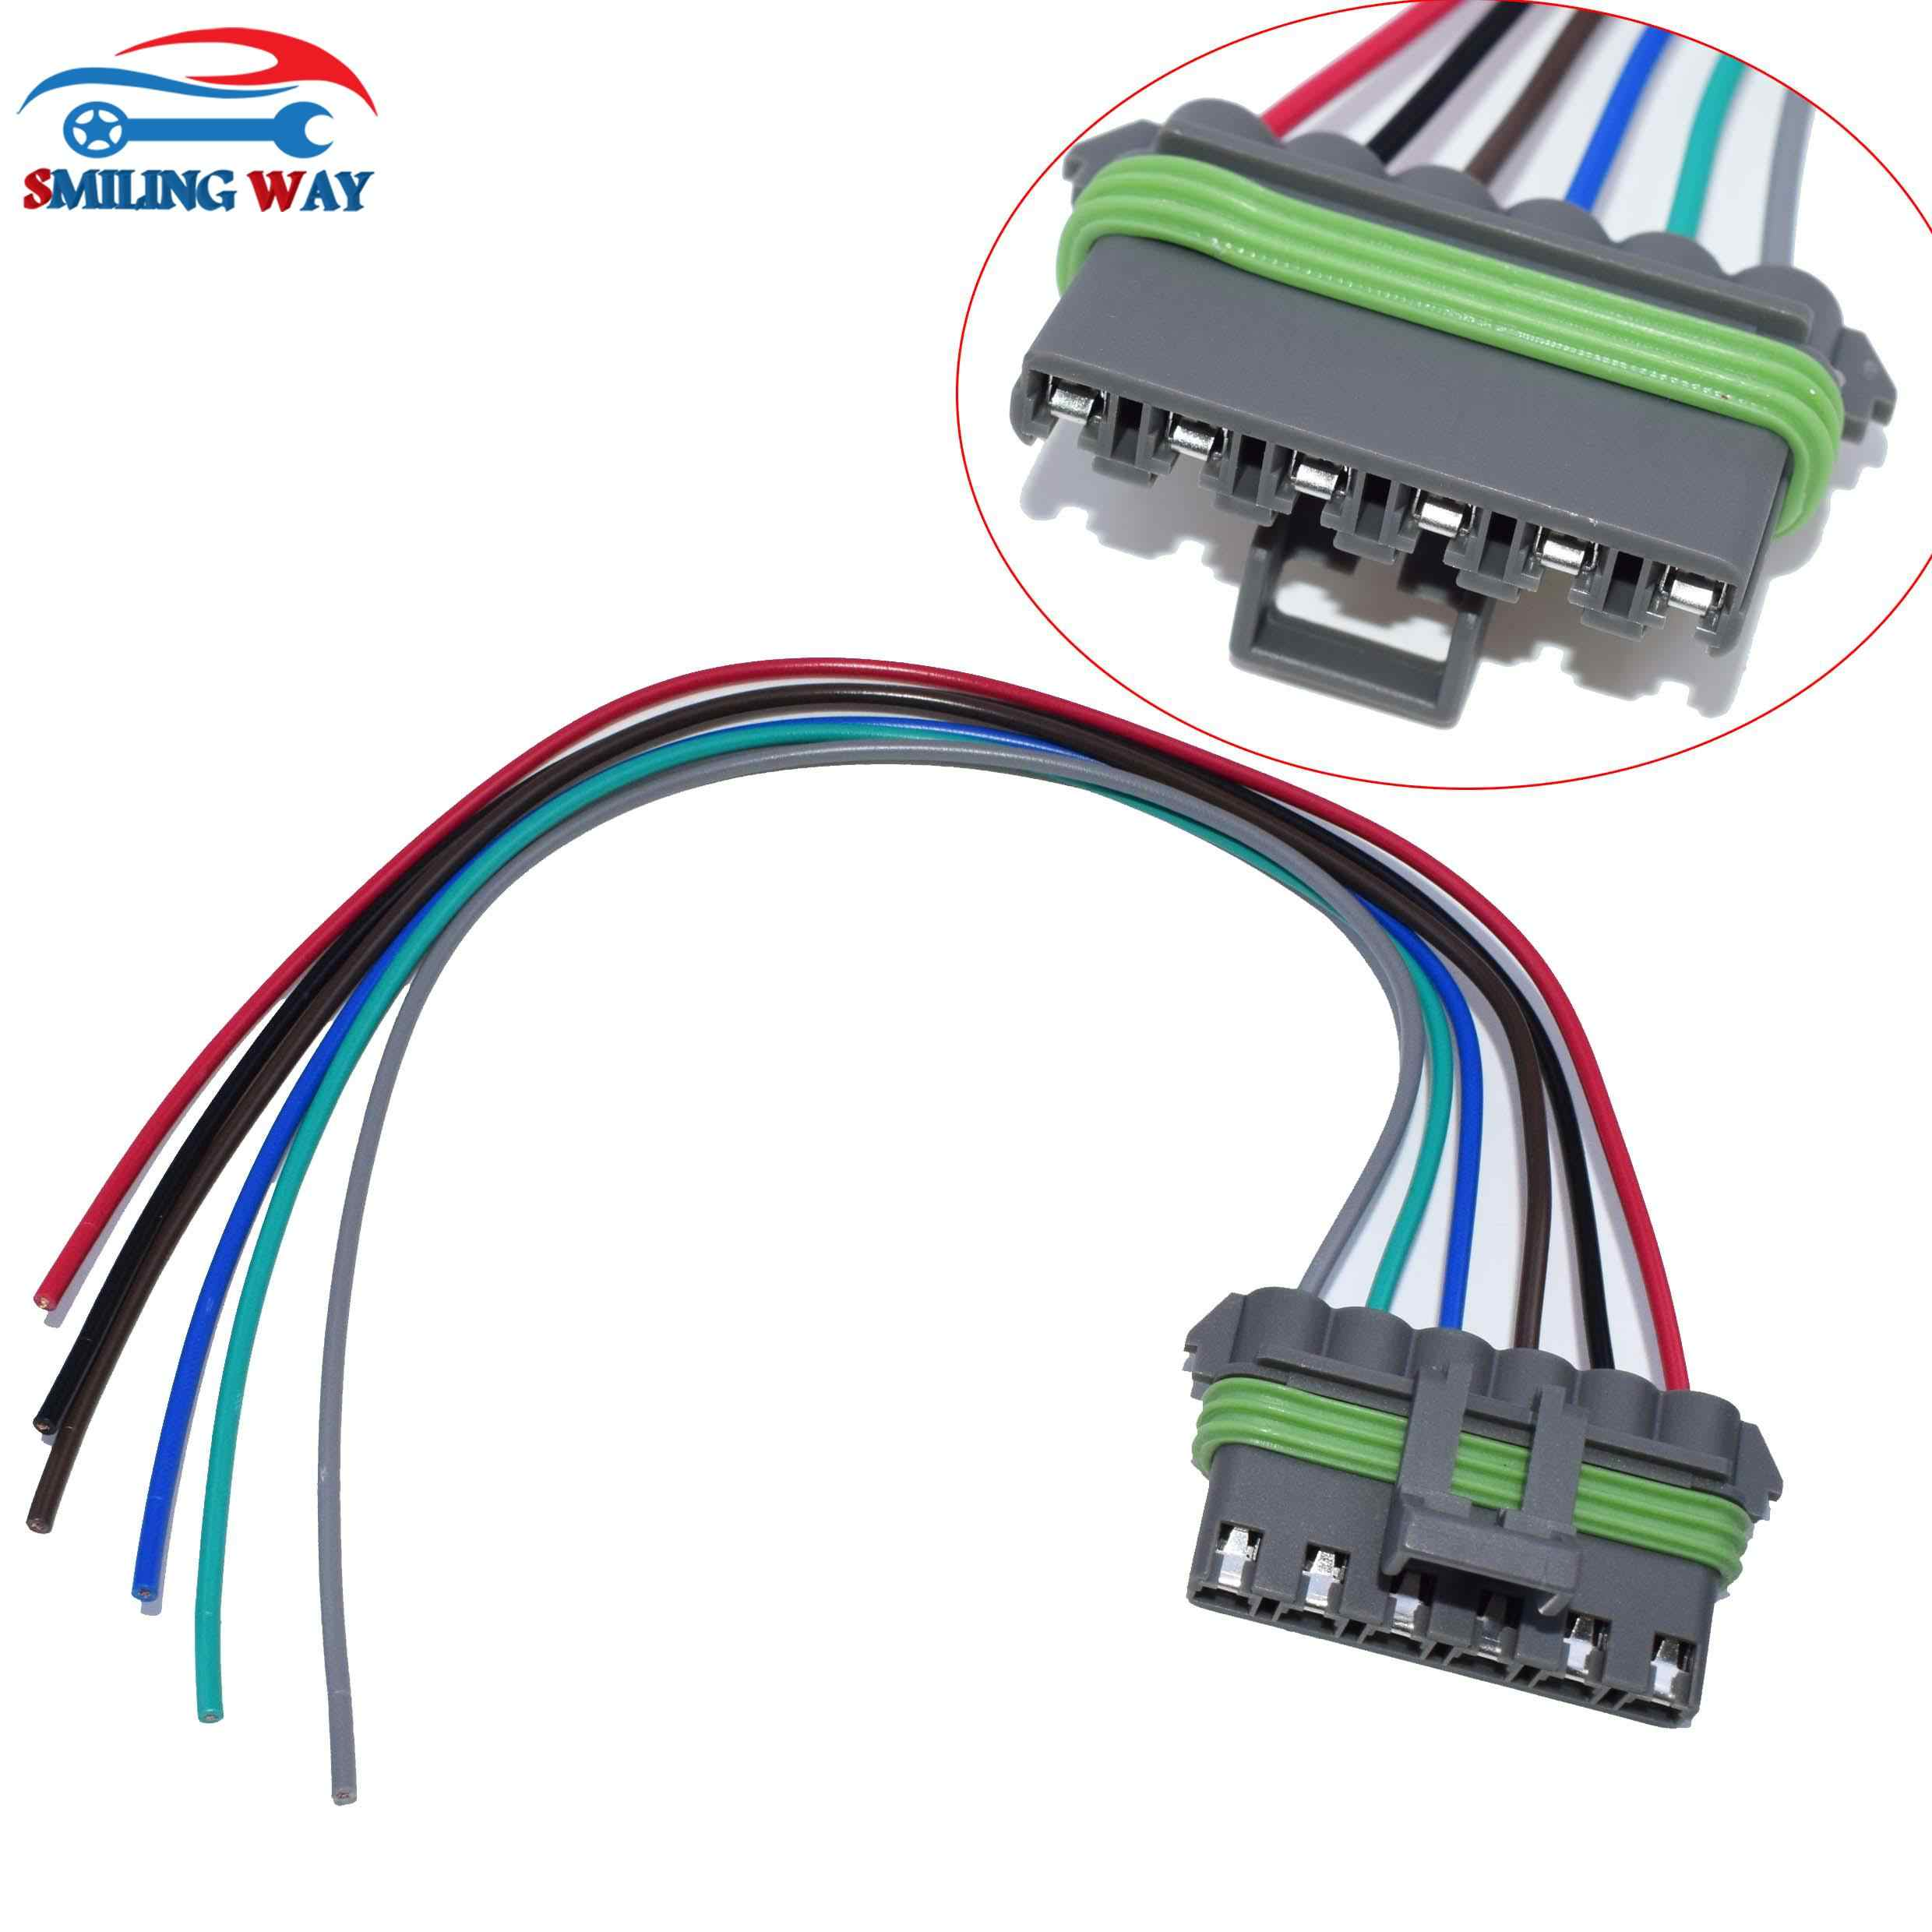 HVAC Blower Motor Resistor / Brake Module / Fuel Pump Module Wiring Harness  Connector Pigtail Cable Plug For Chevrolet GMC| | - AliExpressAliExpress